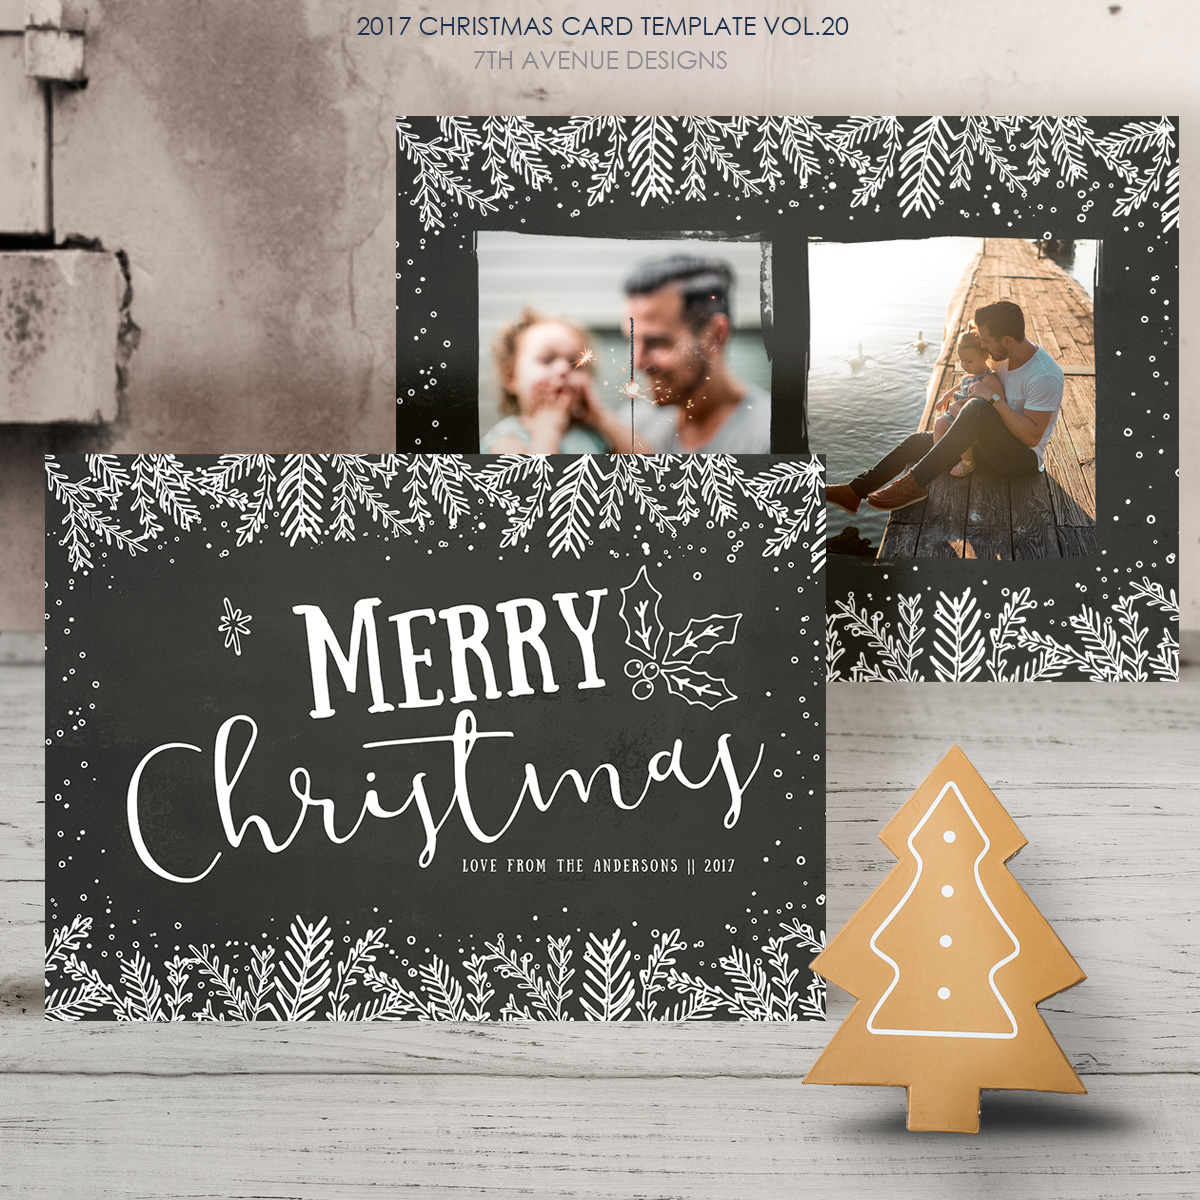 2017 Christmas Card Templates Vol 20